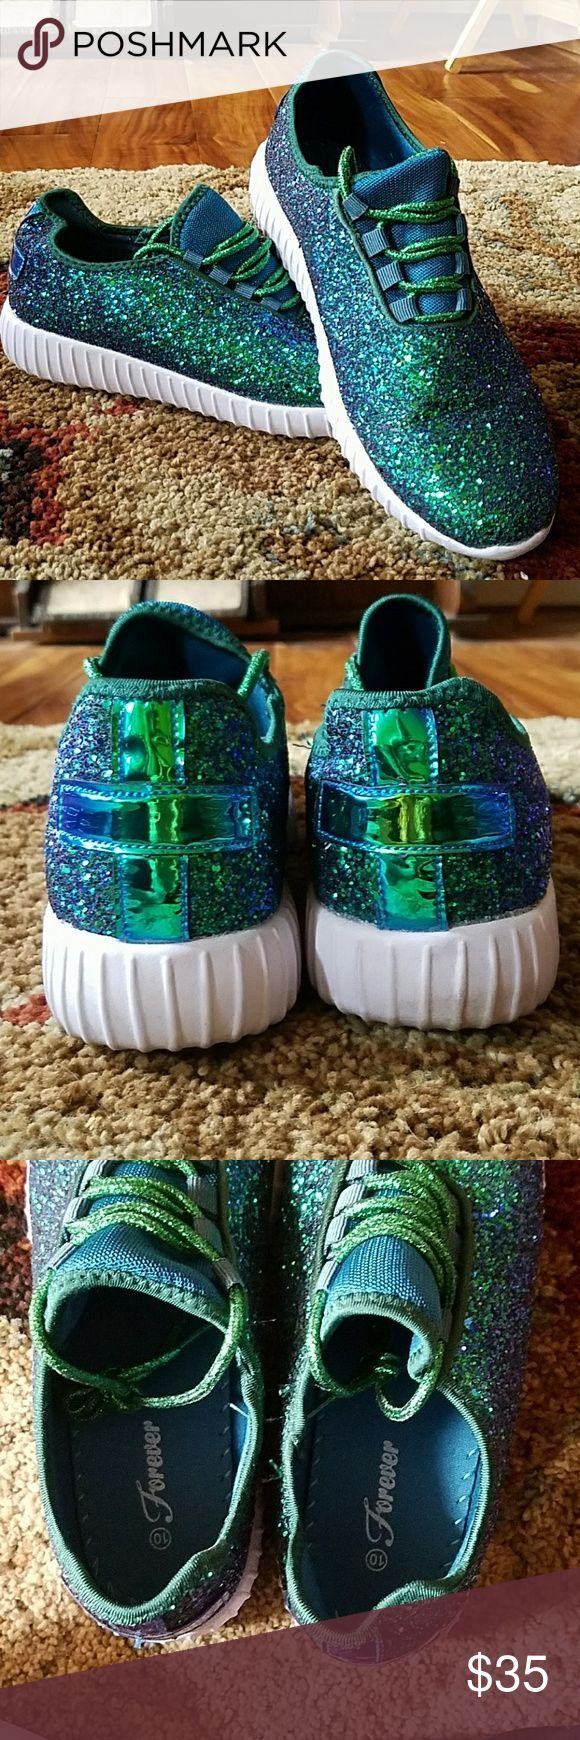 8c4f76130568 Mermaid Glitter Sneakers Teal opalescent casual sneakers. Worn for maybe 2  hours. Size ten. forever Shoes Athletic Shoes